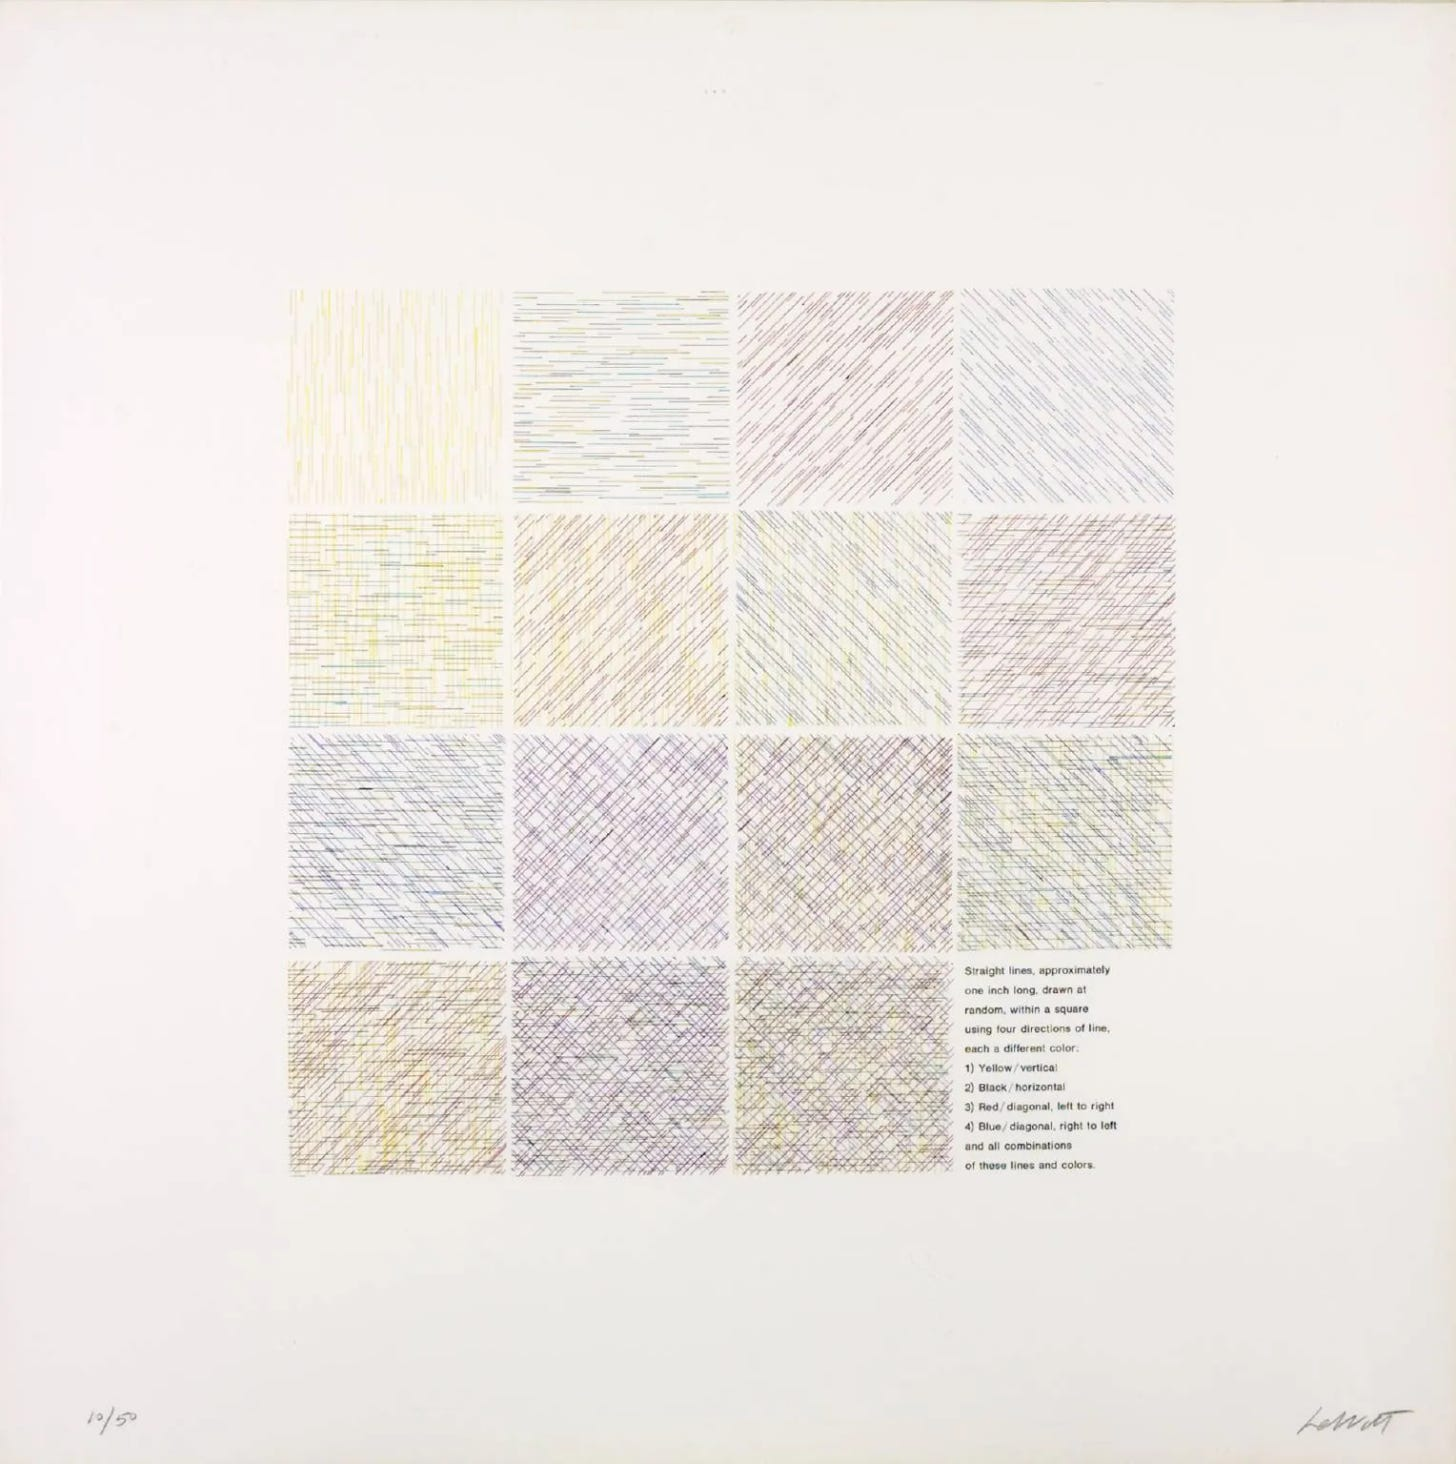 https://publicdelivery.org/wp-content/uploads/2013/07/Sol-LeWitt-–-Lines-of-One-Inch-Four-Directions-Four-Colours-set-of-16-1971.jpg?ezimgfmt=ng:webp/ngcb35